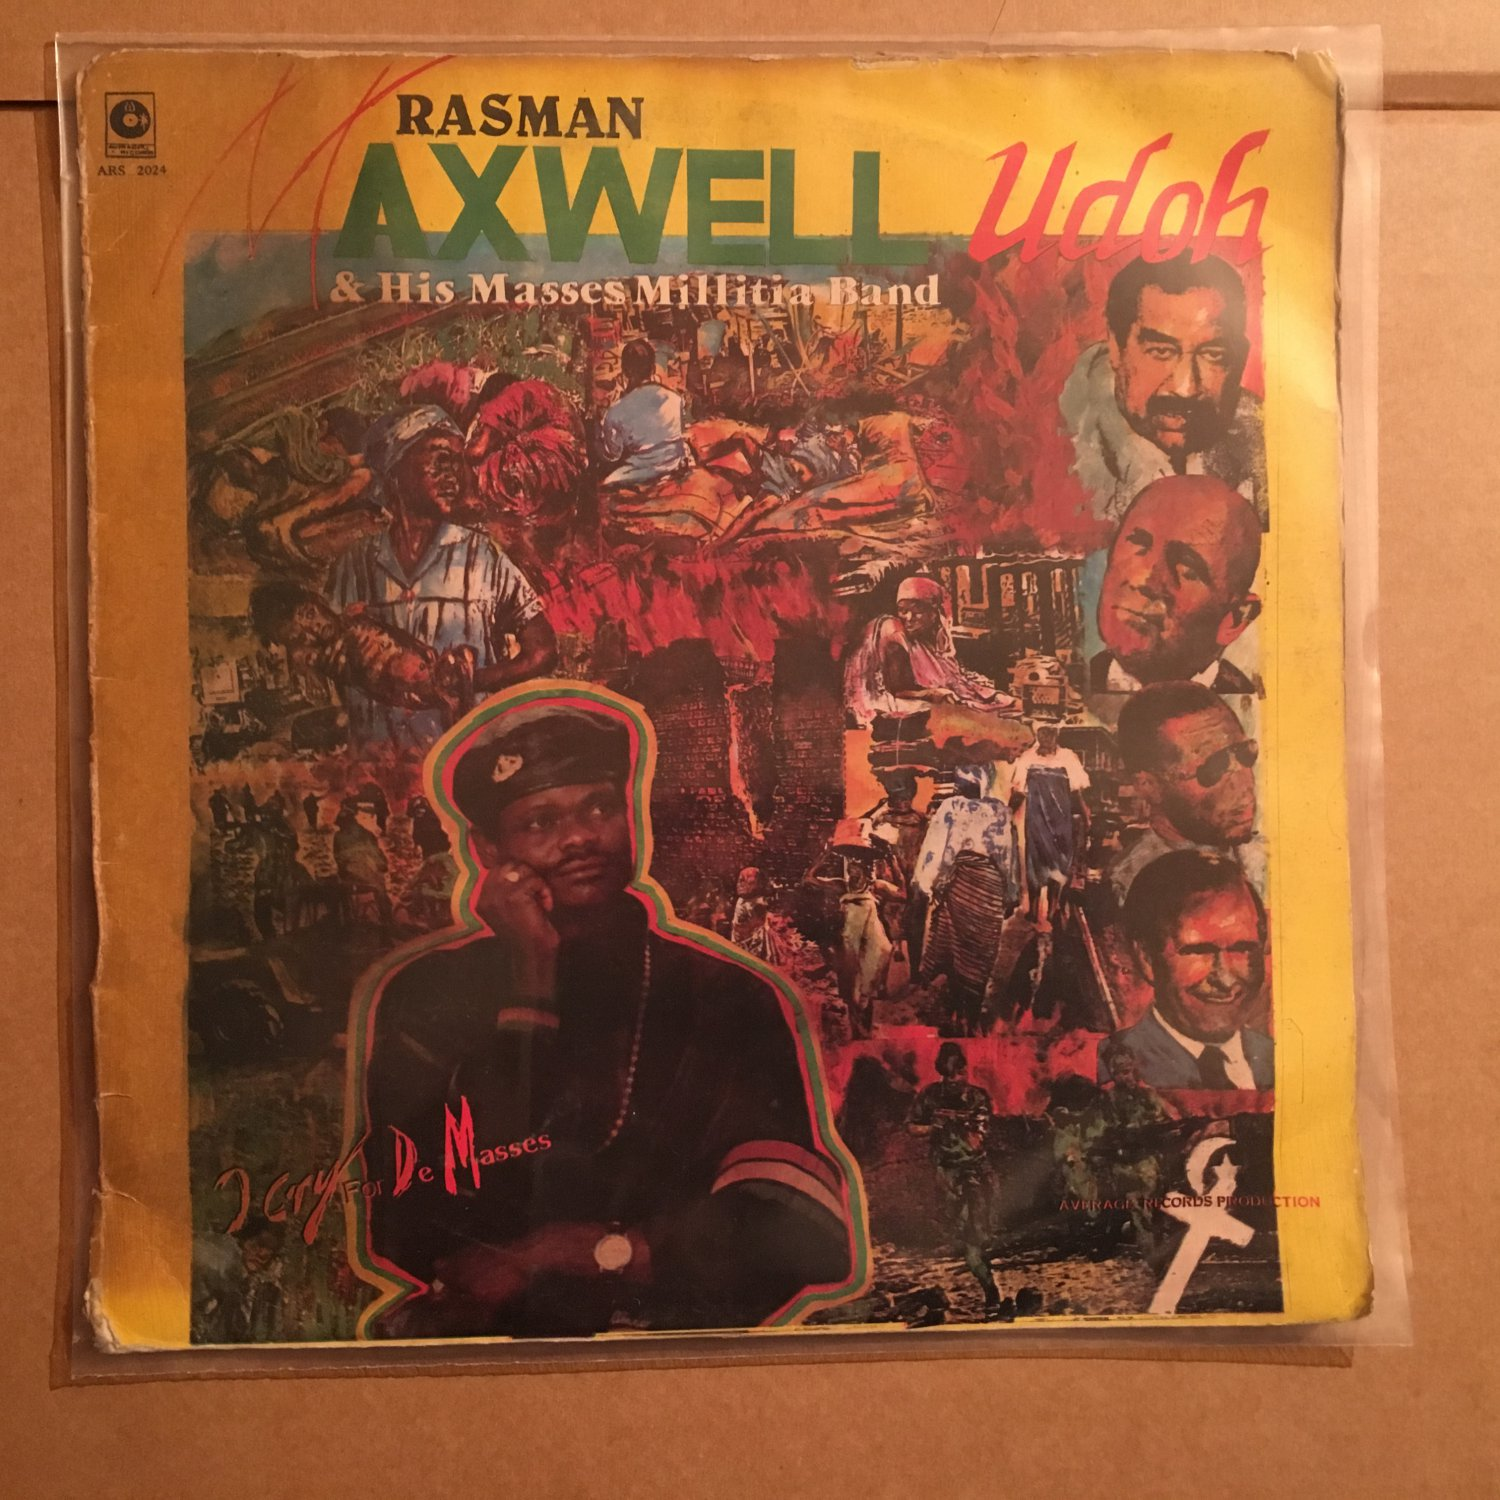 RASSMAN MAXWELL UDOH & HIS MASSES MILITIA BAND LP i cry for the masses NIGERIA REGGAE mp3 LISTEN